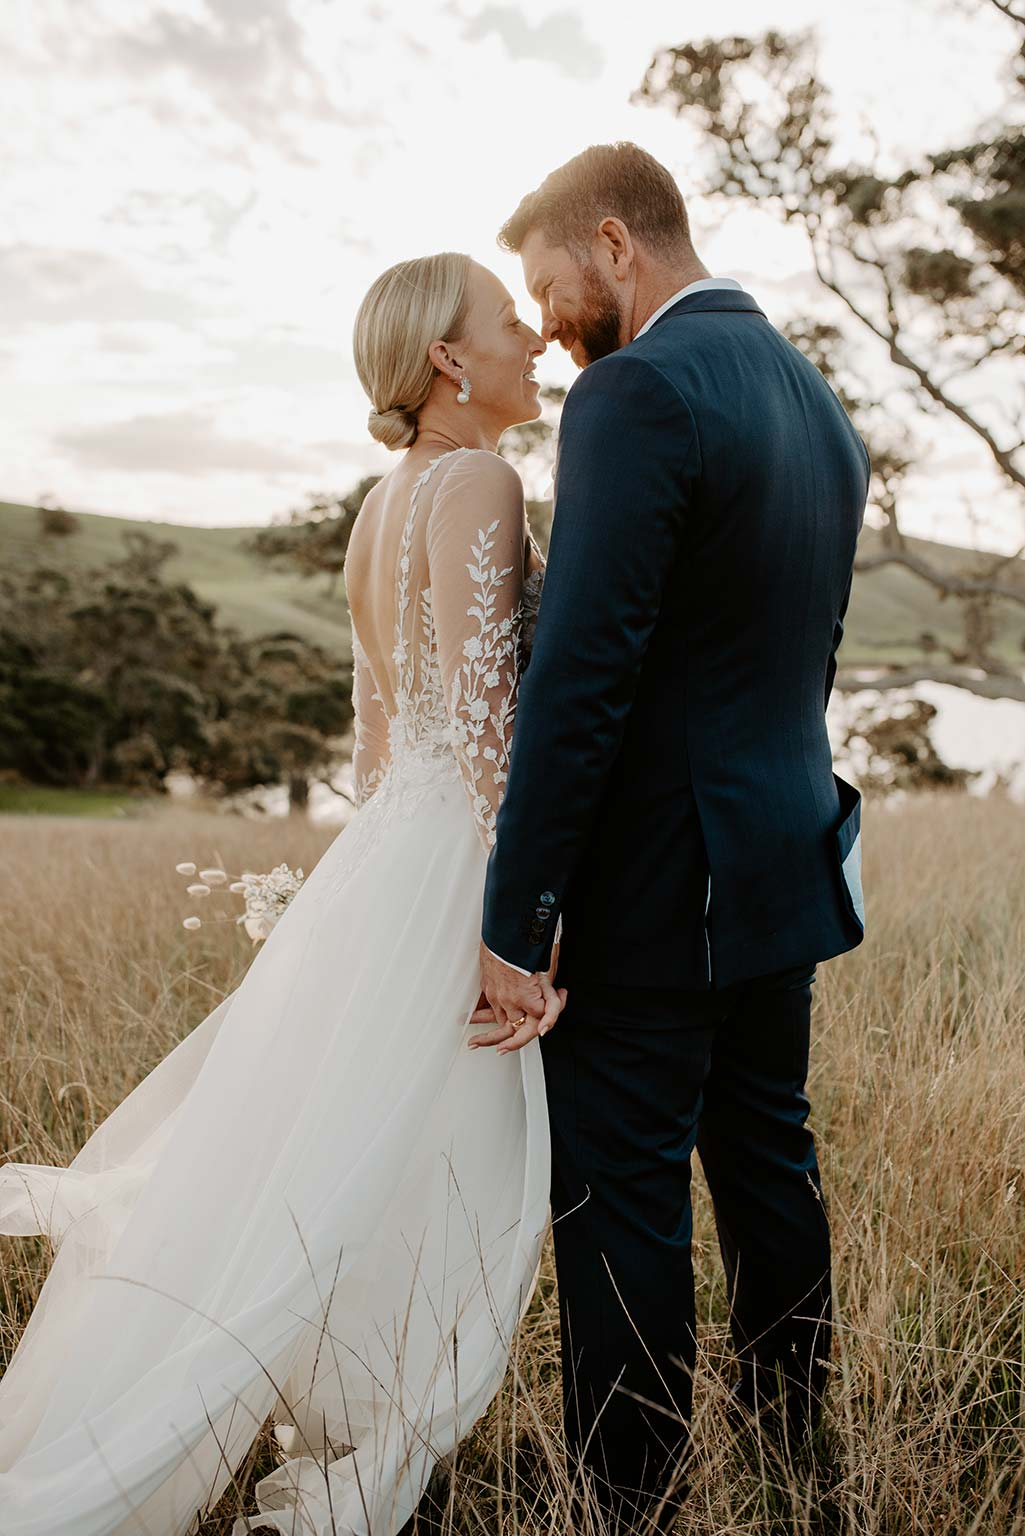 Vinka Design Features Real Weddings - bride and groom embrace - bride wearing a bespoke Makaira gown with silk-chiffon and tulle overskirt giving her a beautiful train which could be removed later on to reveal a floor length party dress